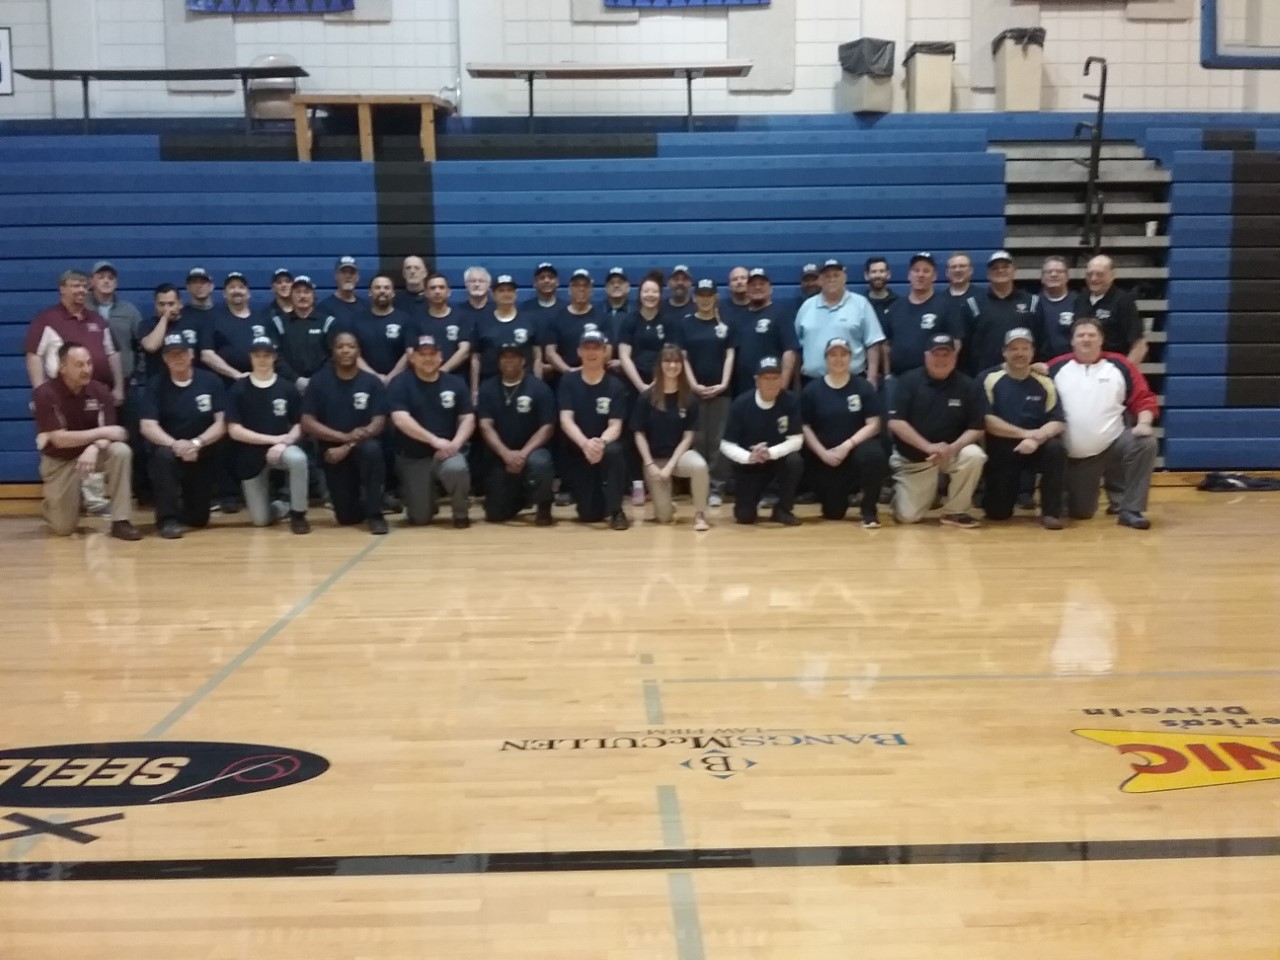 2018 umpire school group